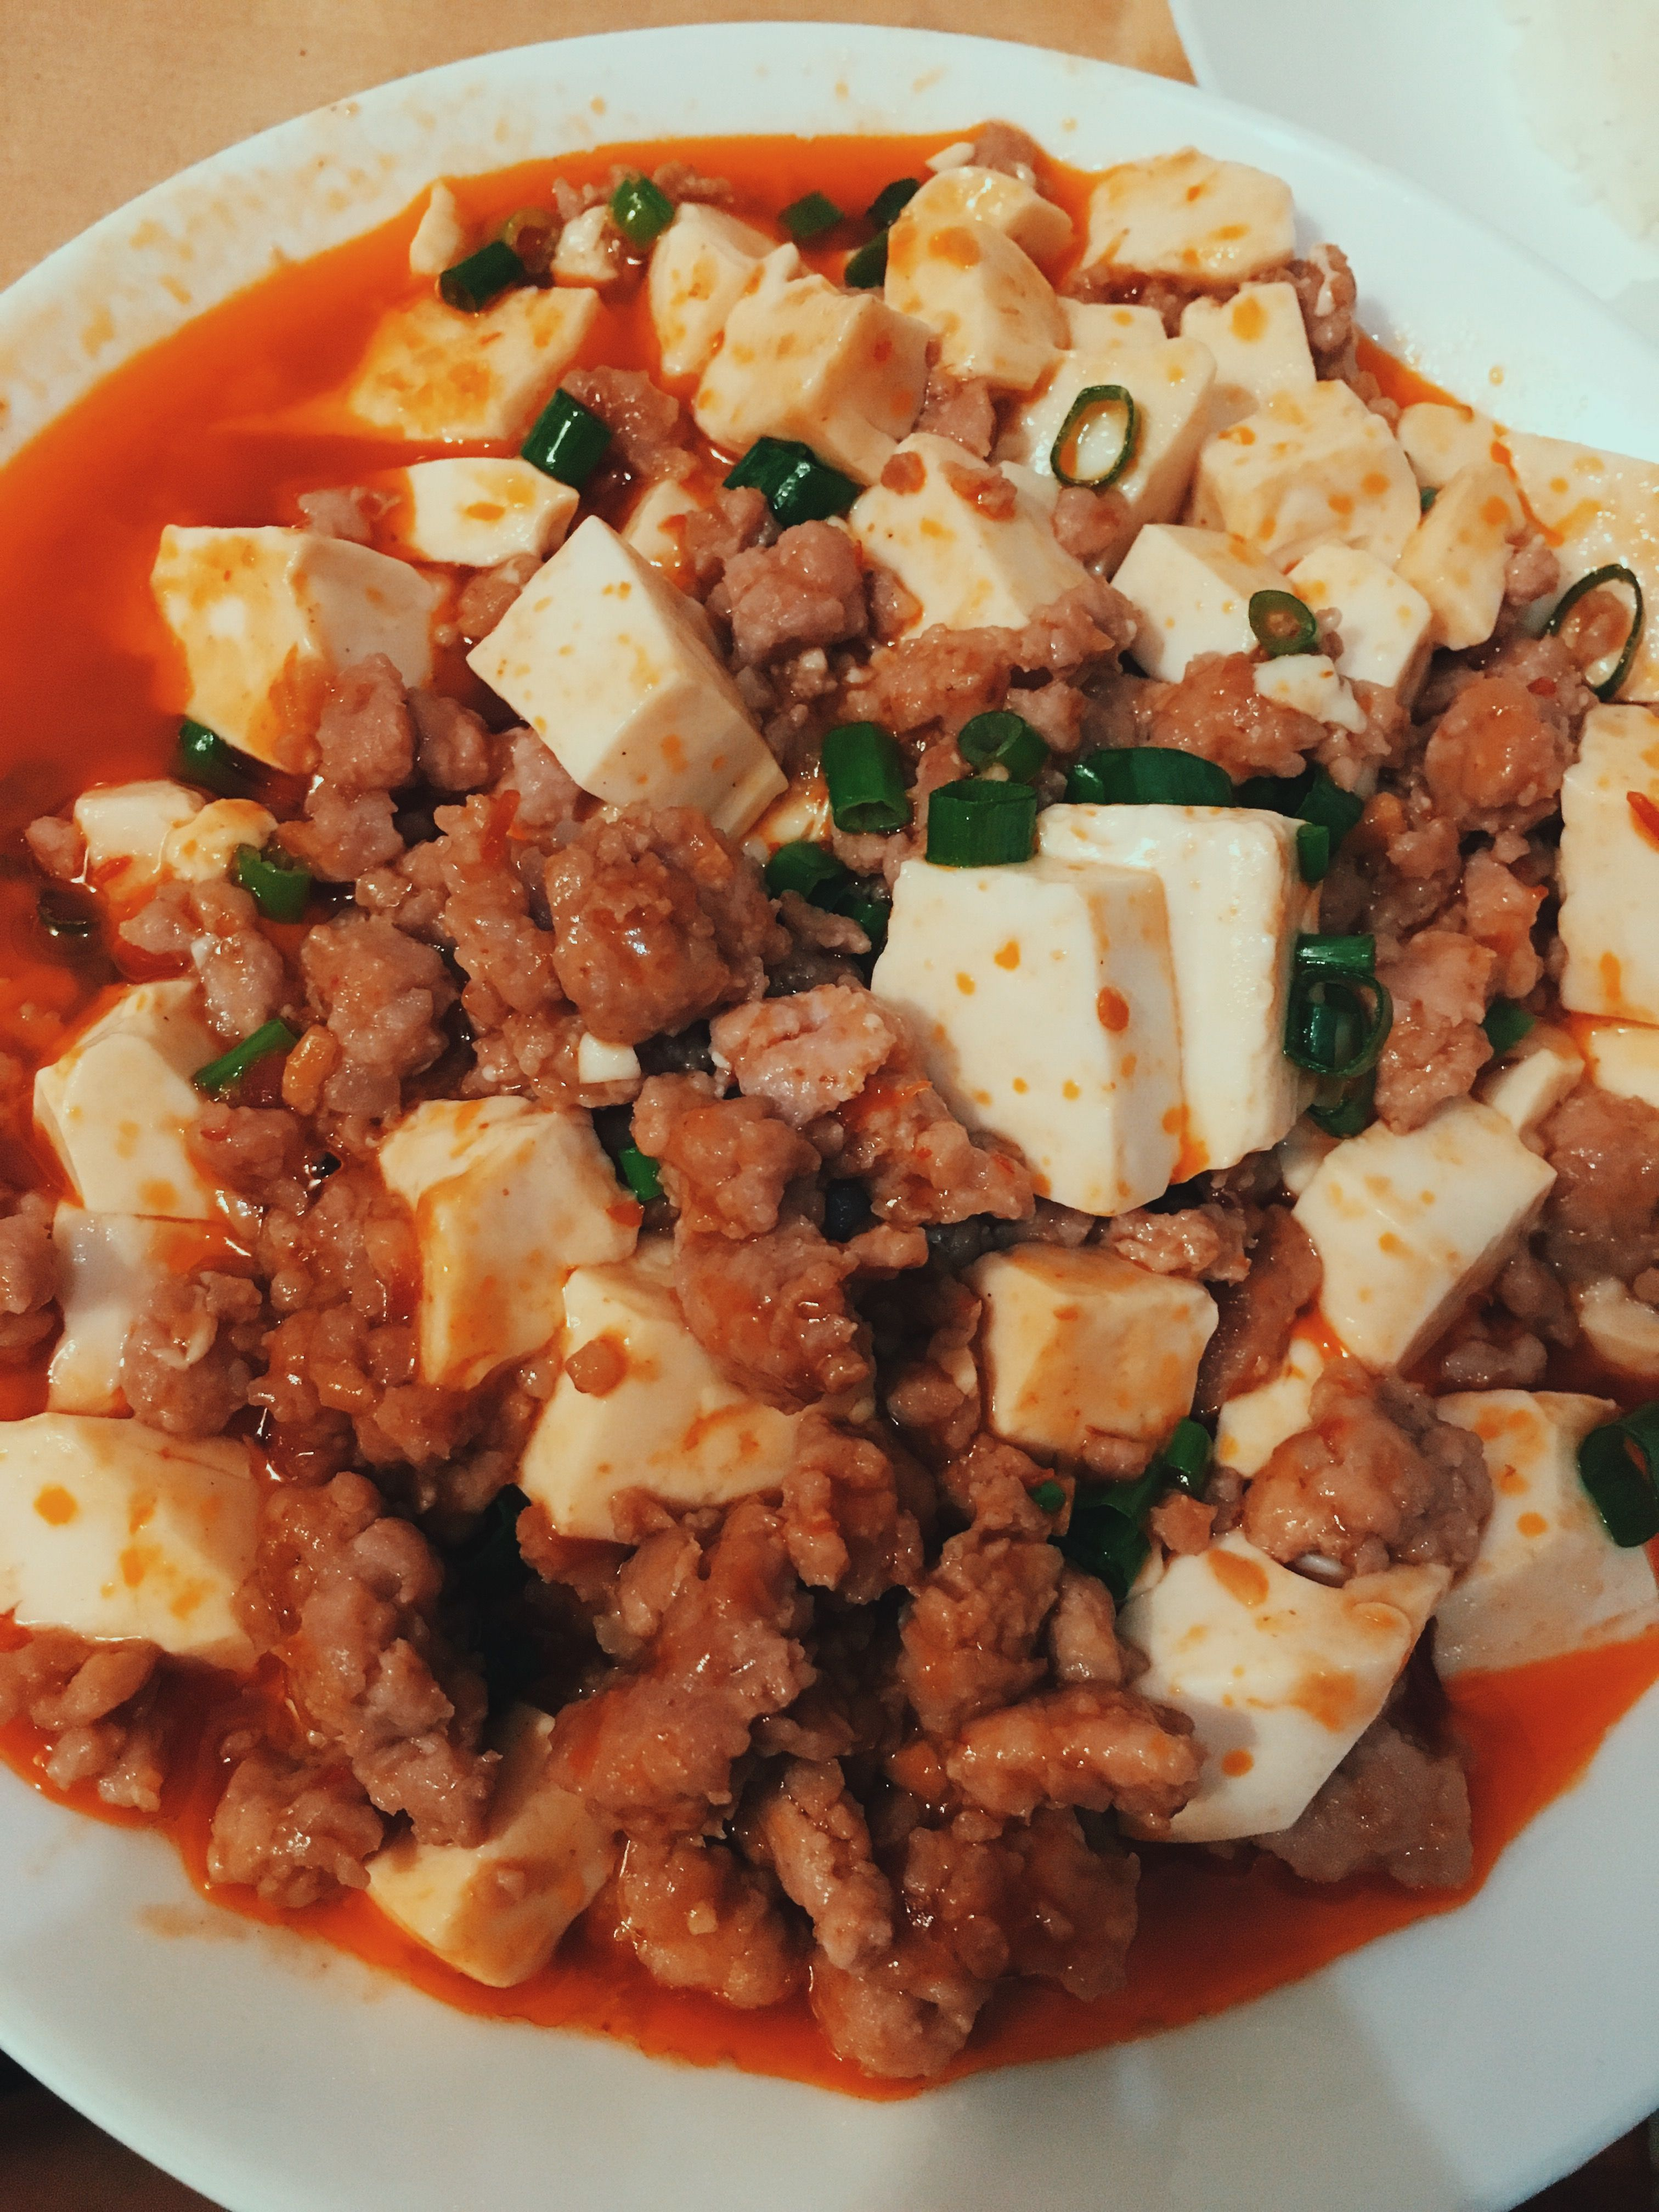 Hong Kong Travel Instagram Aesthetic Things To Do In Mapo Tofu Recipe Chinese Food Food Asian Recipes Main Meals